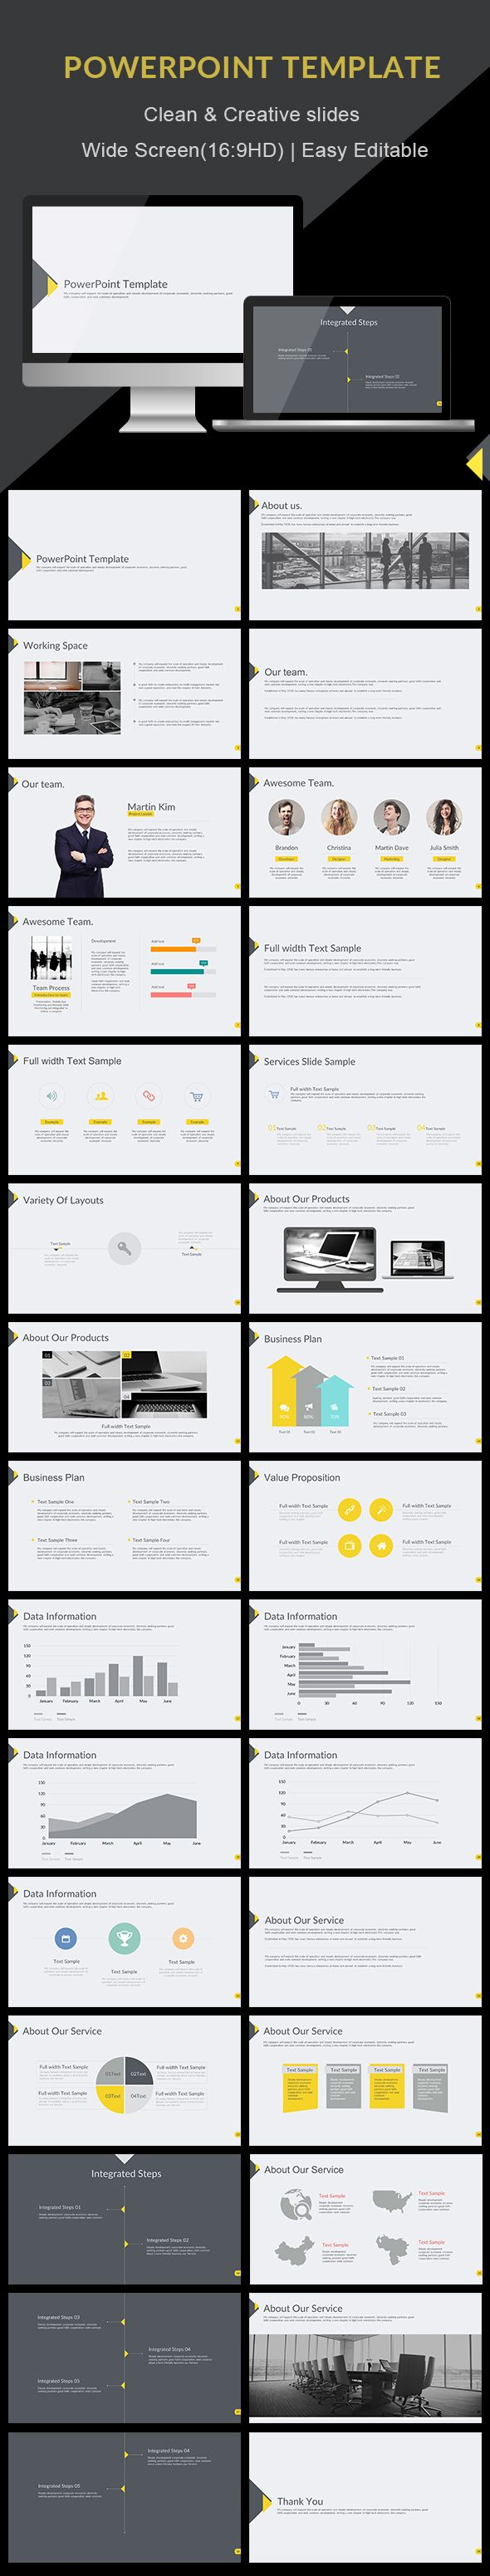 31 best blue powerpoint templates images on pinterest ppt template